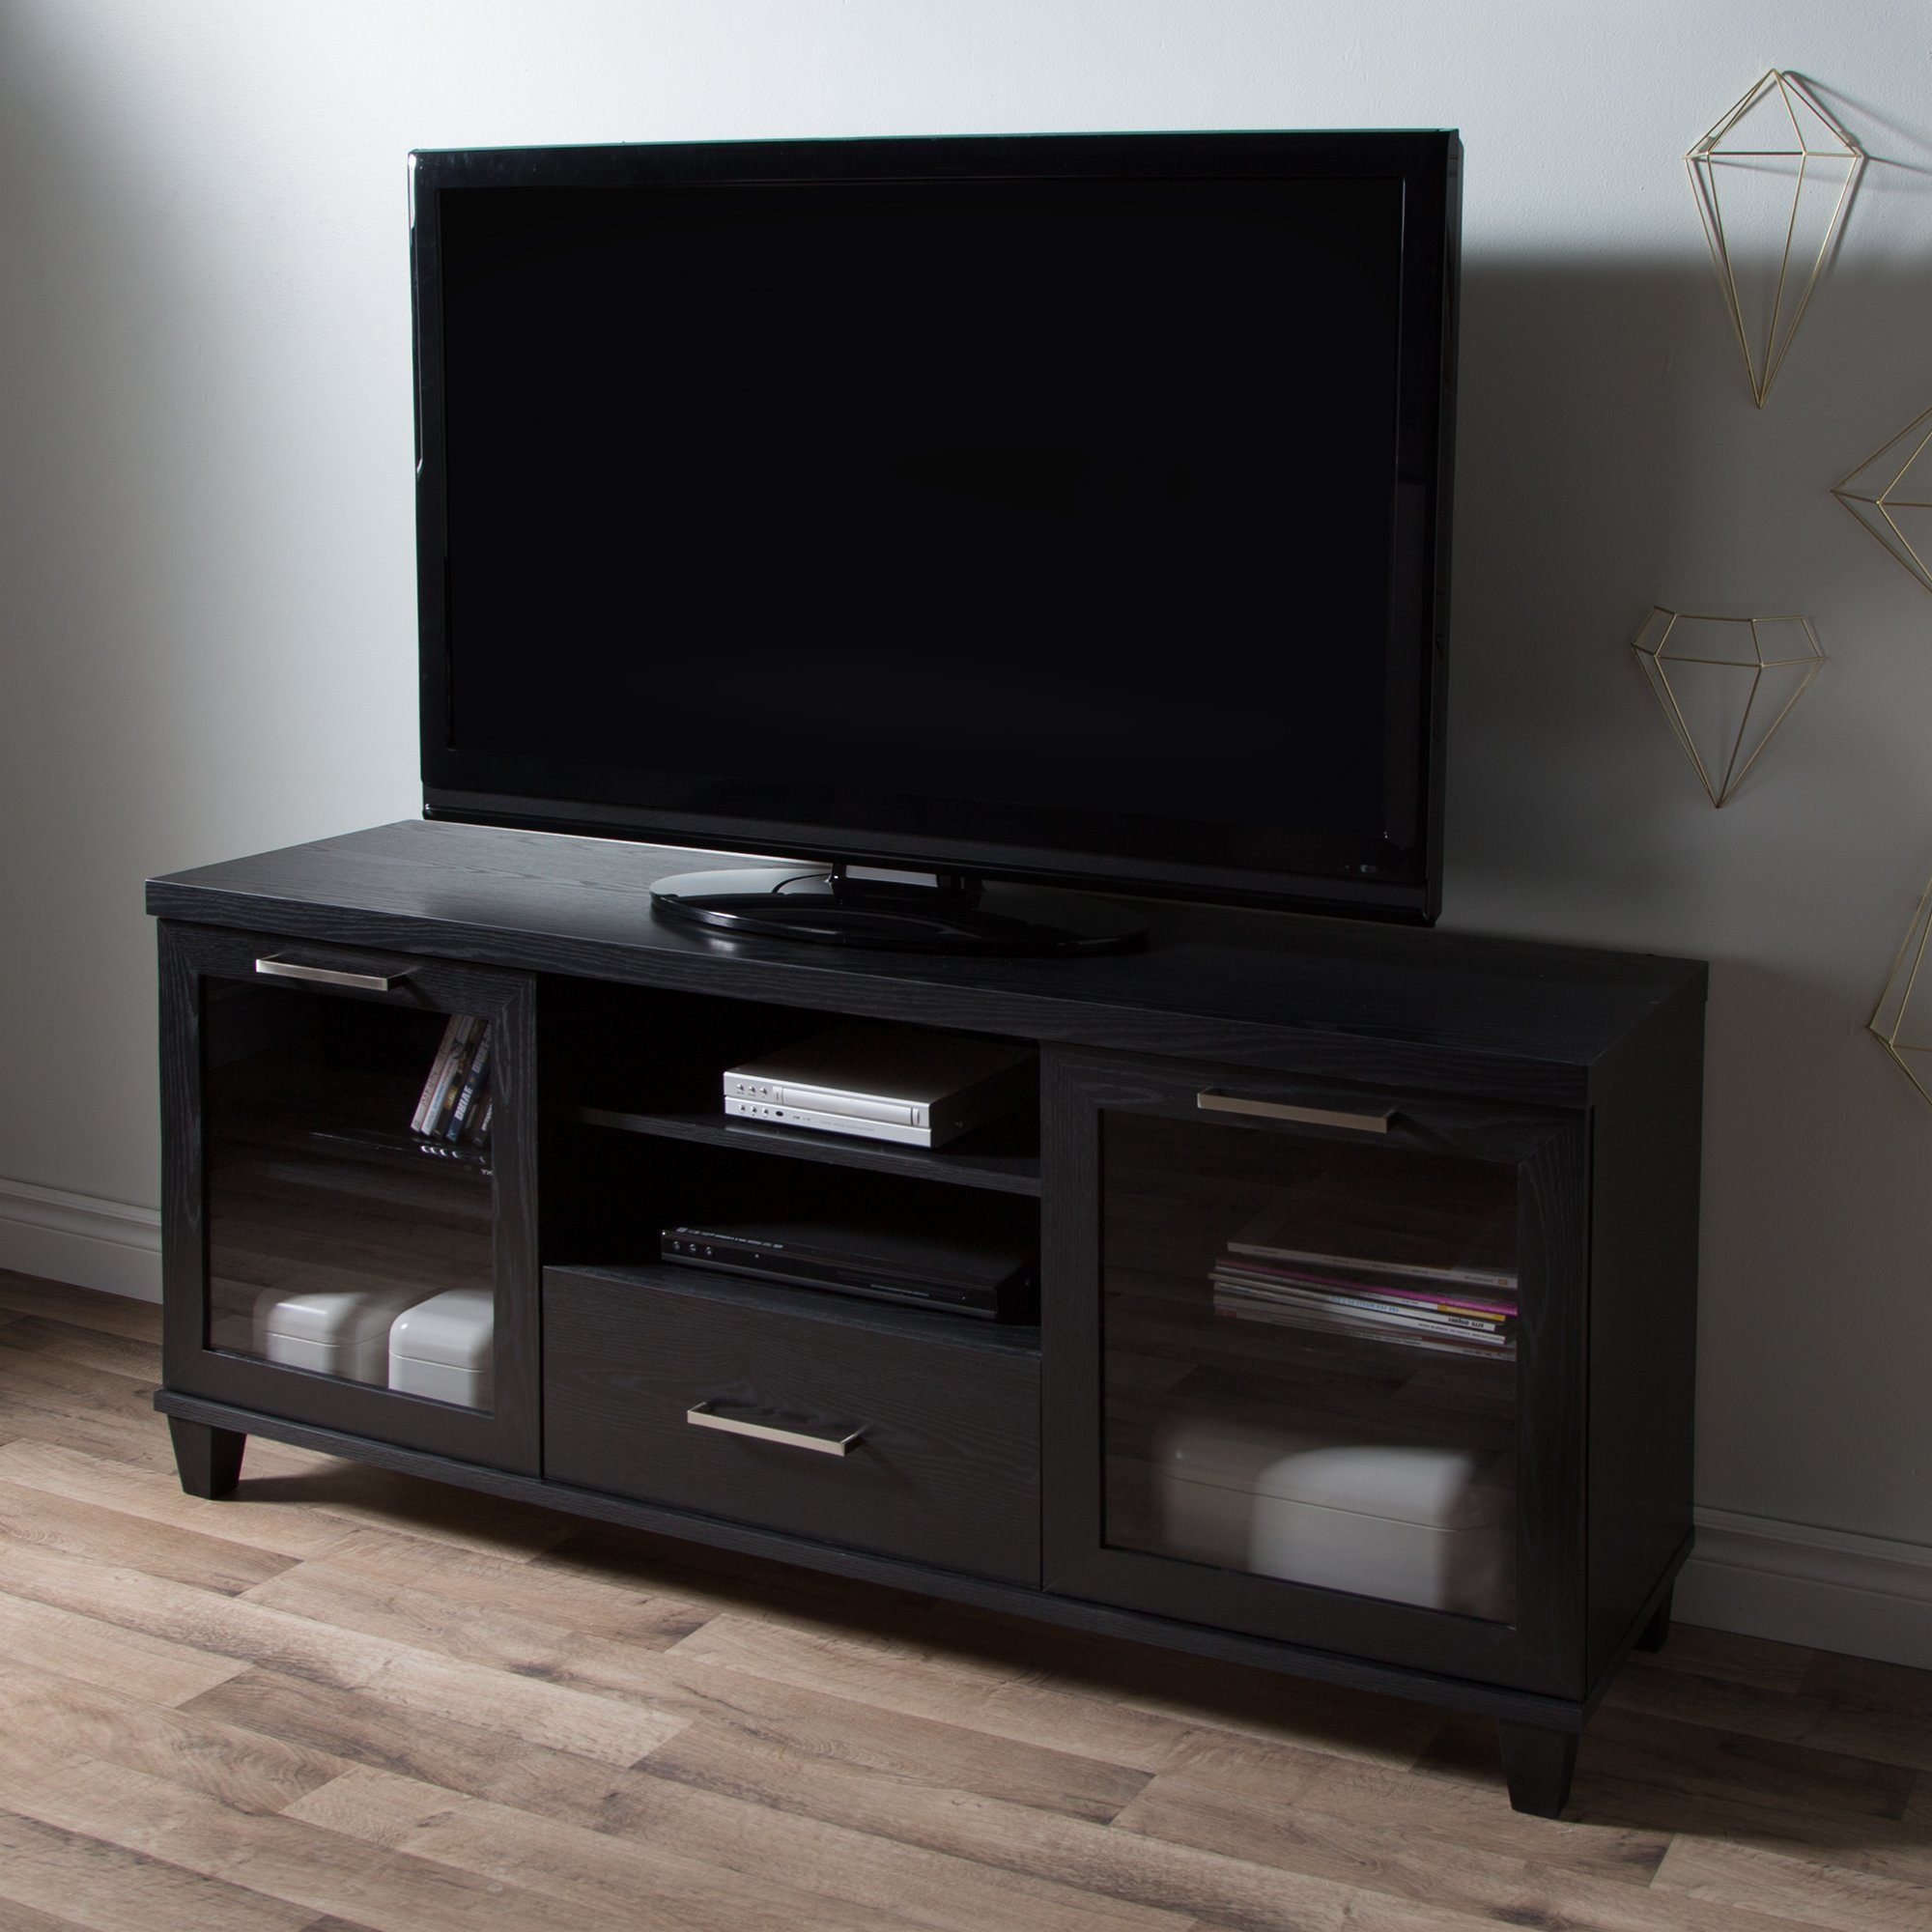 South Shore 9073662 Adrian Stand for Tvs Up to 60'',Black Oak by South Shore